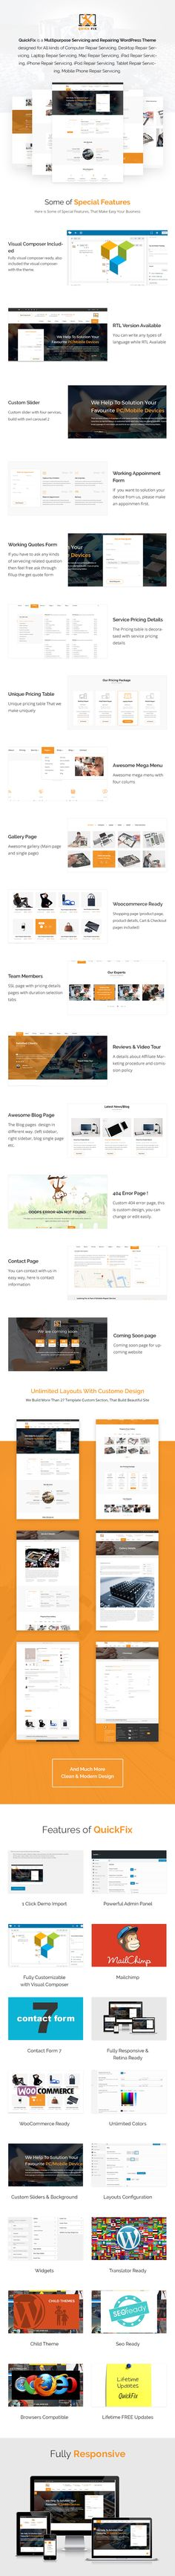 CoSolu is a Multipurpose Servicing and Repairing WordPress Theme designed for All kinds of Computer Repair Servicing, Desktop Repair Servicing, Laptop Repair Servicing, Mac Repair Servicing, iPad Repair Servicing, iPhone Repair Servicing, iPod Repair Servicing, Tablet Repair Servicing, Mobile Phone Repair Servicing, Car Servicing, etc.